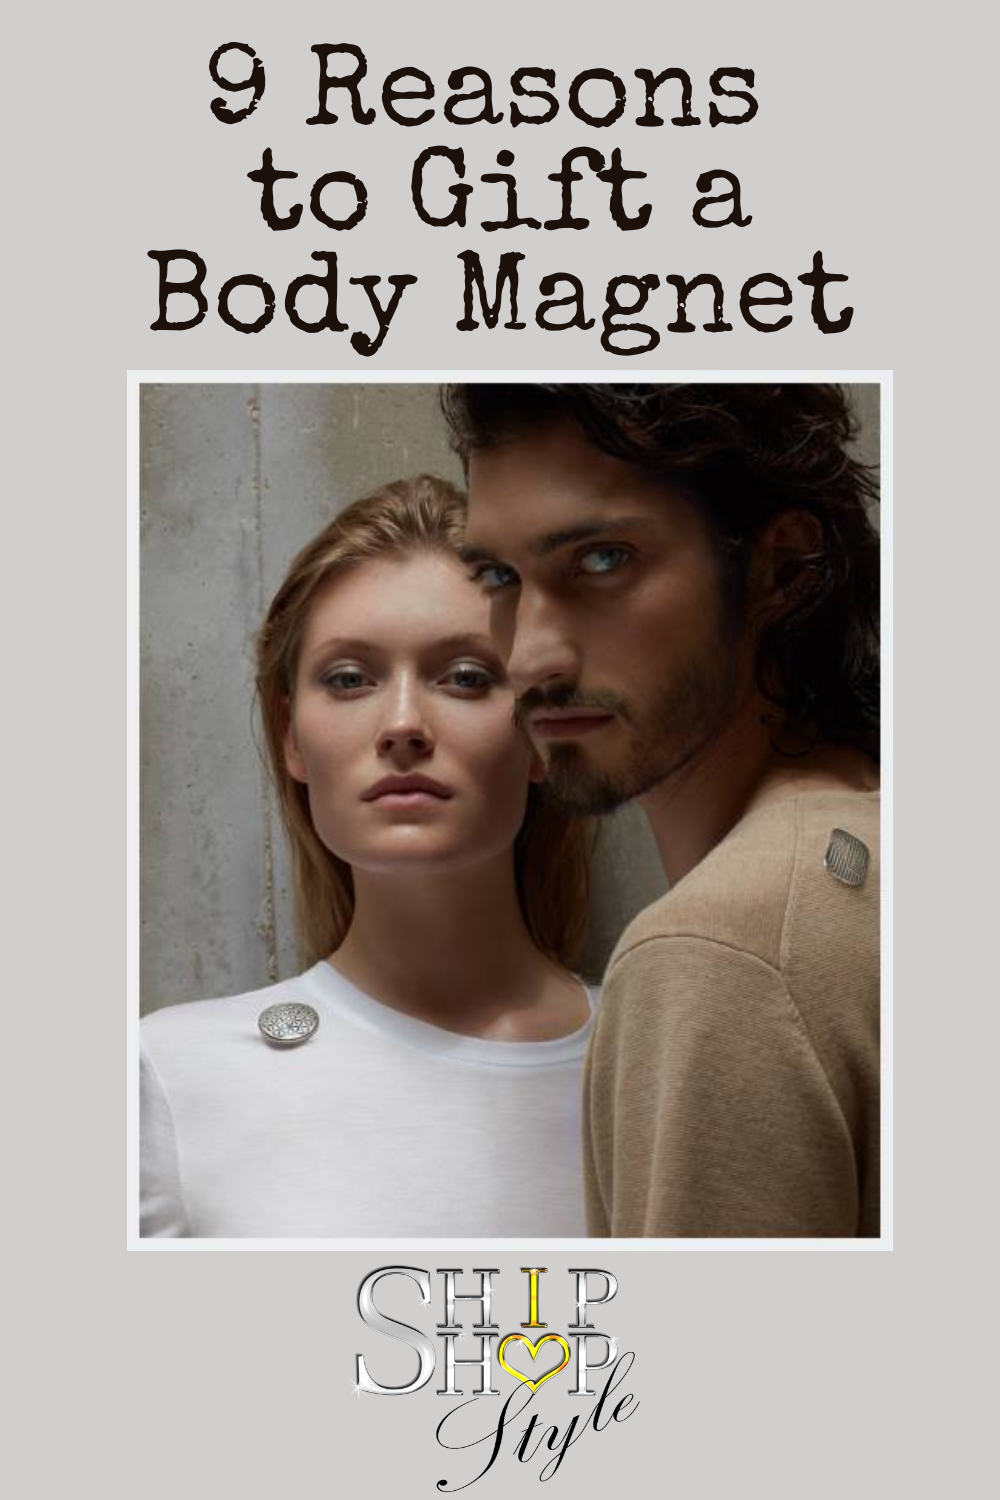 9 Reasons to Gift a Body Magnet - Ship Shop Style